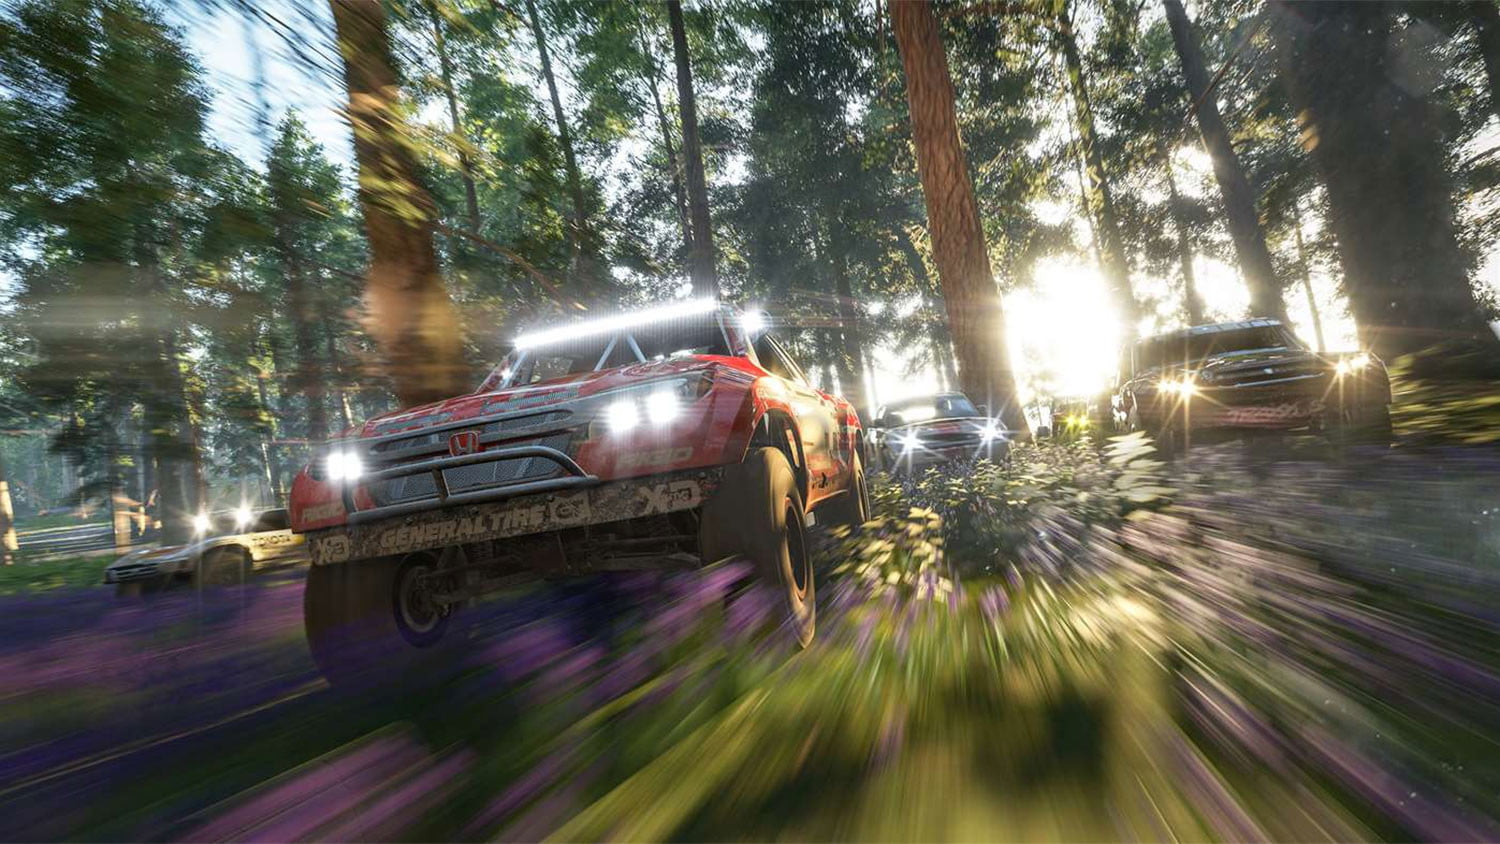 Forza Horizon 4': How to Complete the Lumberjack Skill